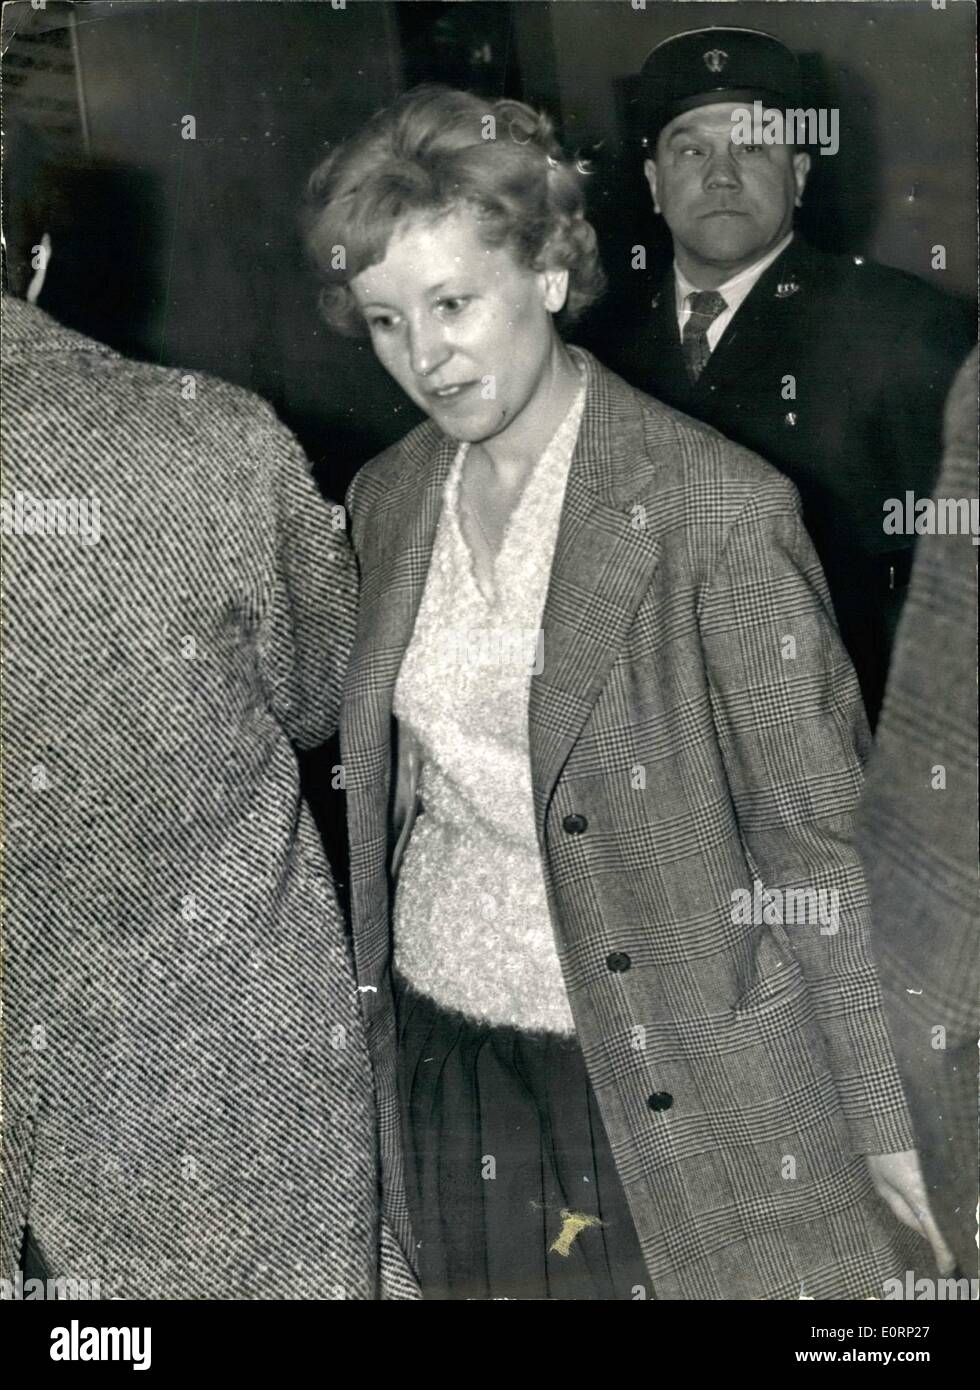 Apr. 04, 1960 - ''Ballets Rose'' Trial opens in Paris: Twenty three prominent people involved in one of the biggest post-war scandals (known as ''Ballets Rose'') were on trial at the Paris Correctional Court to-day. Photo shows MME Sorlut, wife of Pierre Sorlut, charged with promoting the Eballet Rose parties, pictured in the lobby of the Paris Law Courts. - Stock Image